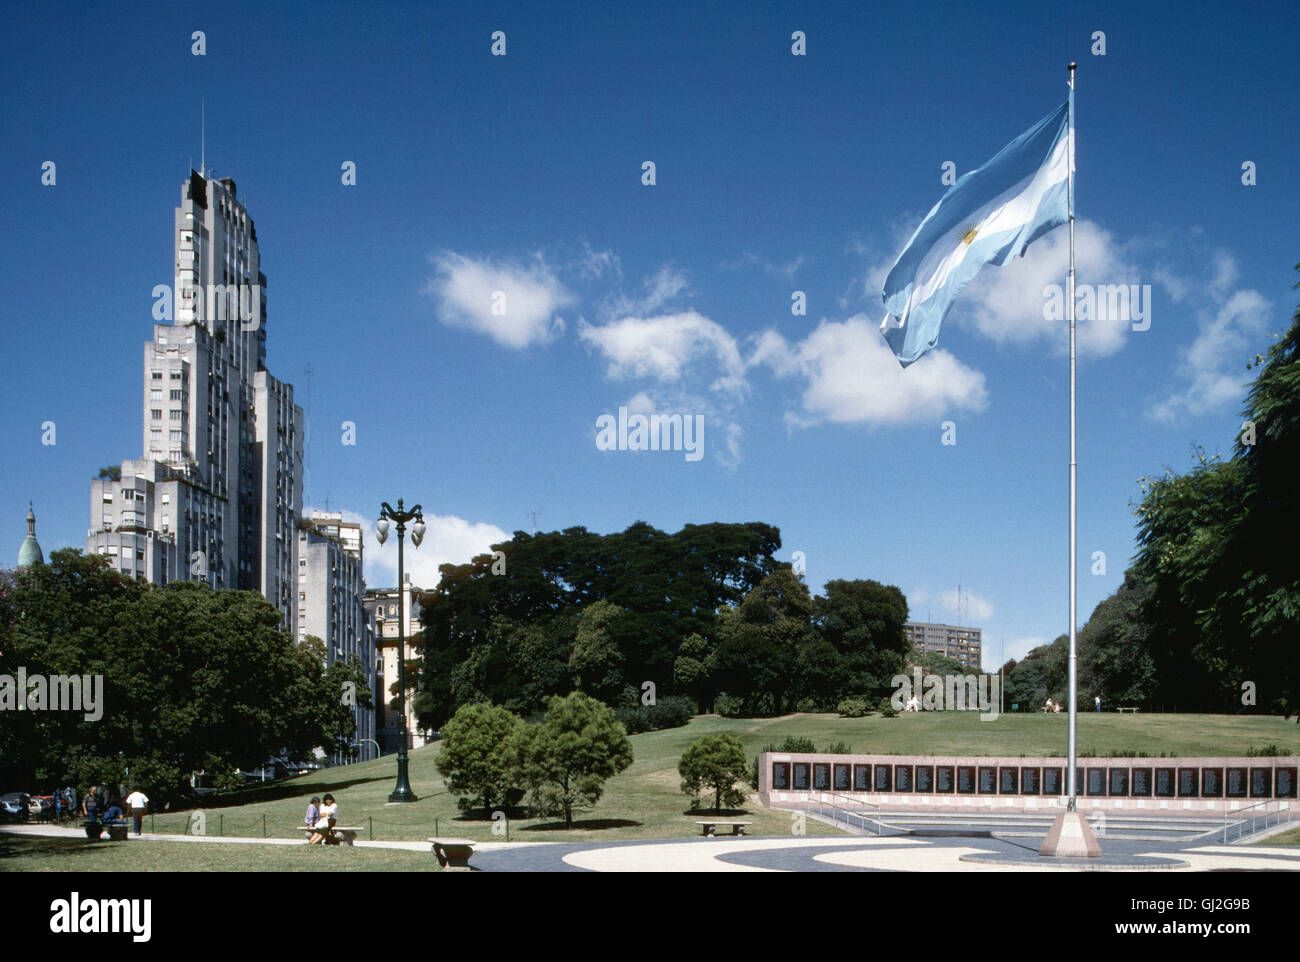 kavanagh building and monument to the fallen of the malvinas, st martin square, buenos aires, argentina, south america - Stock Image